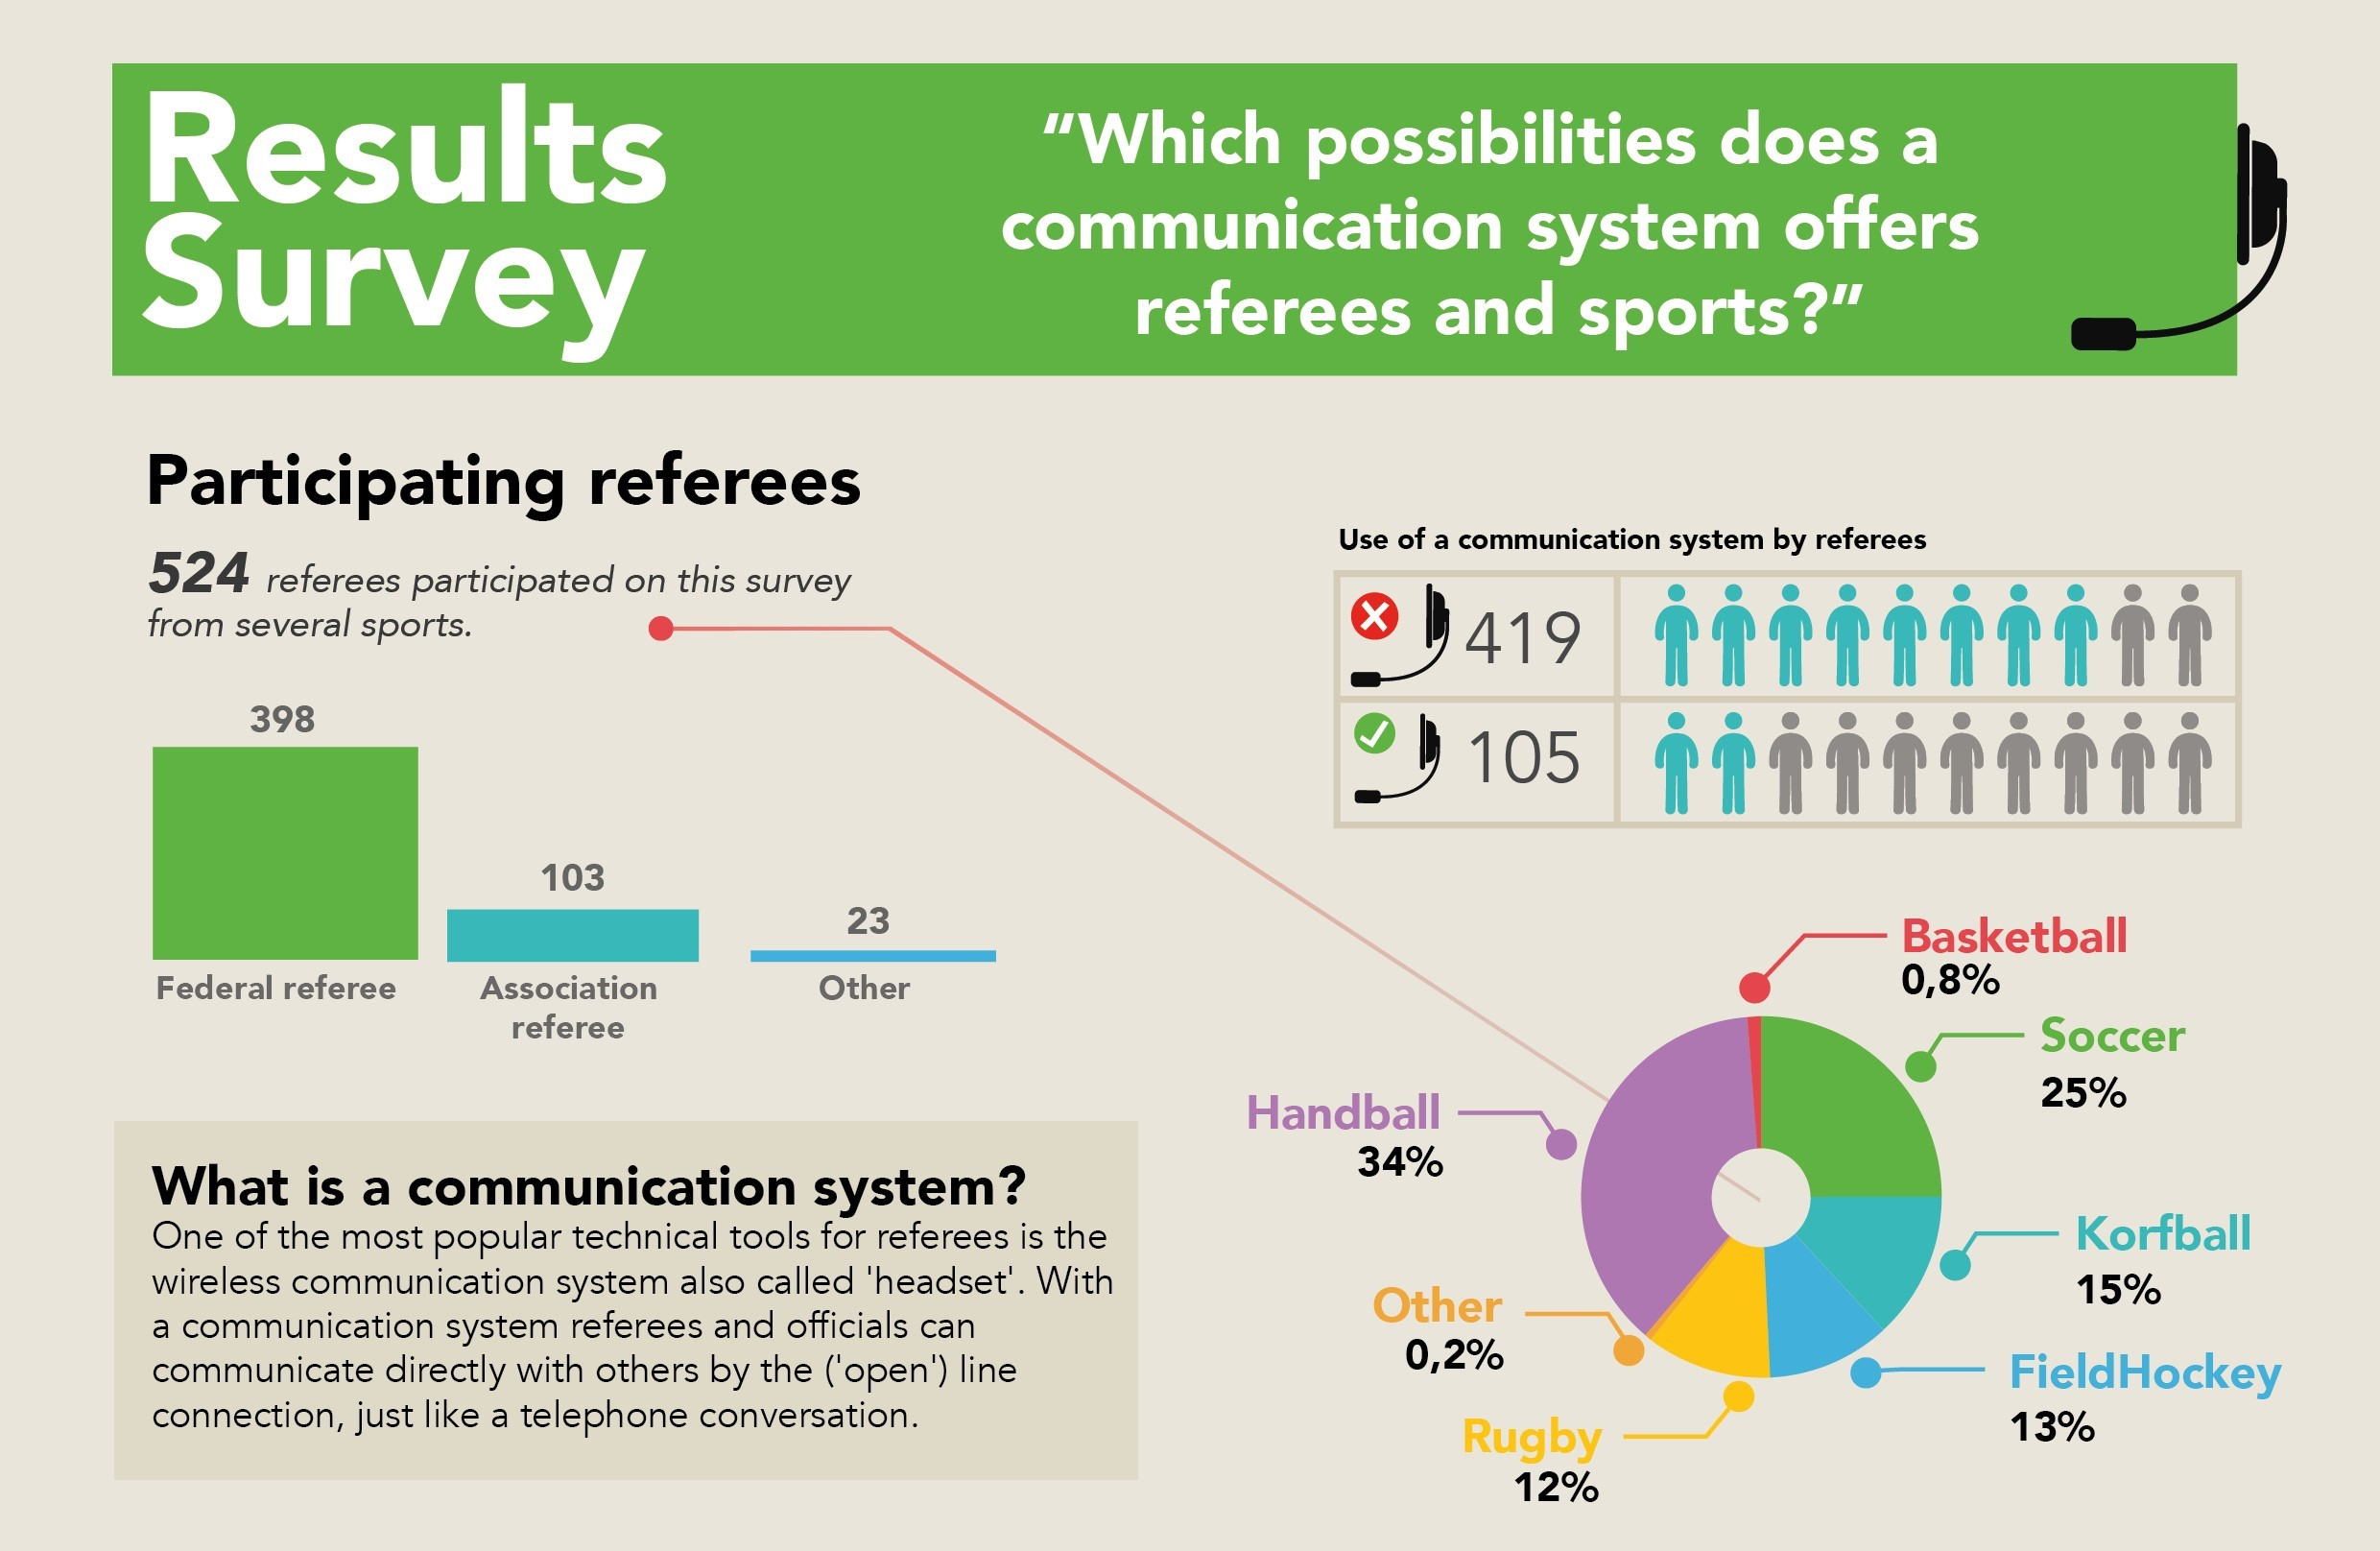 /infographic-which-possibilities-does-a-communication-system-offers-referees-and-sports-axiwi